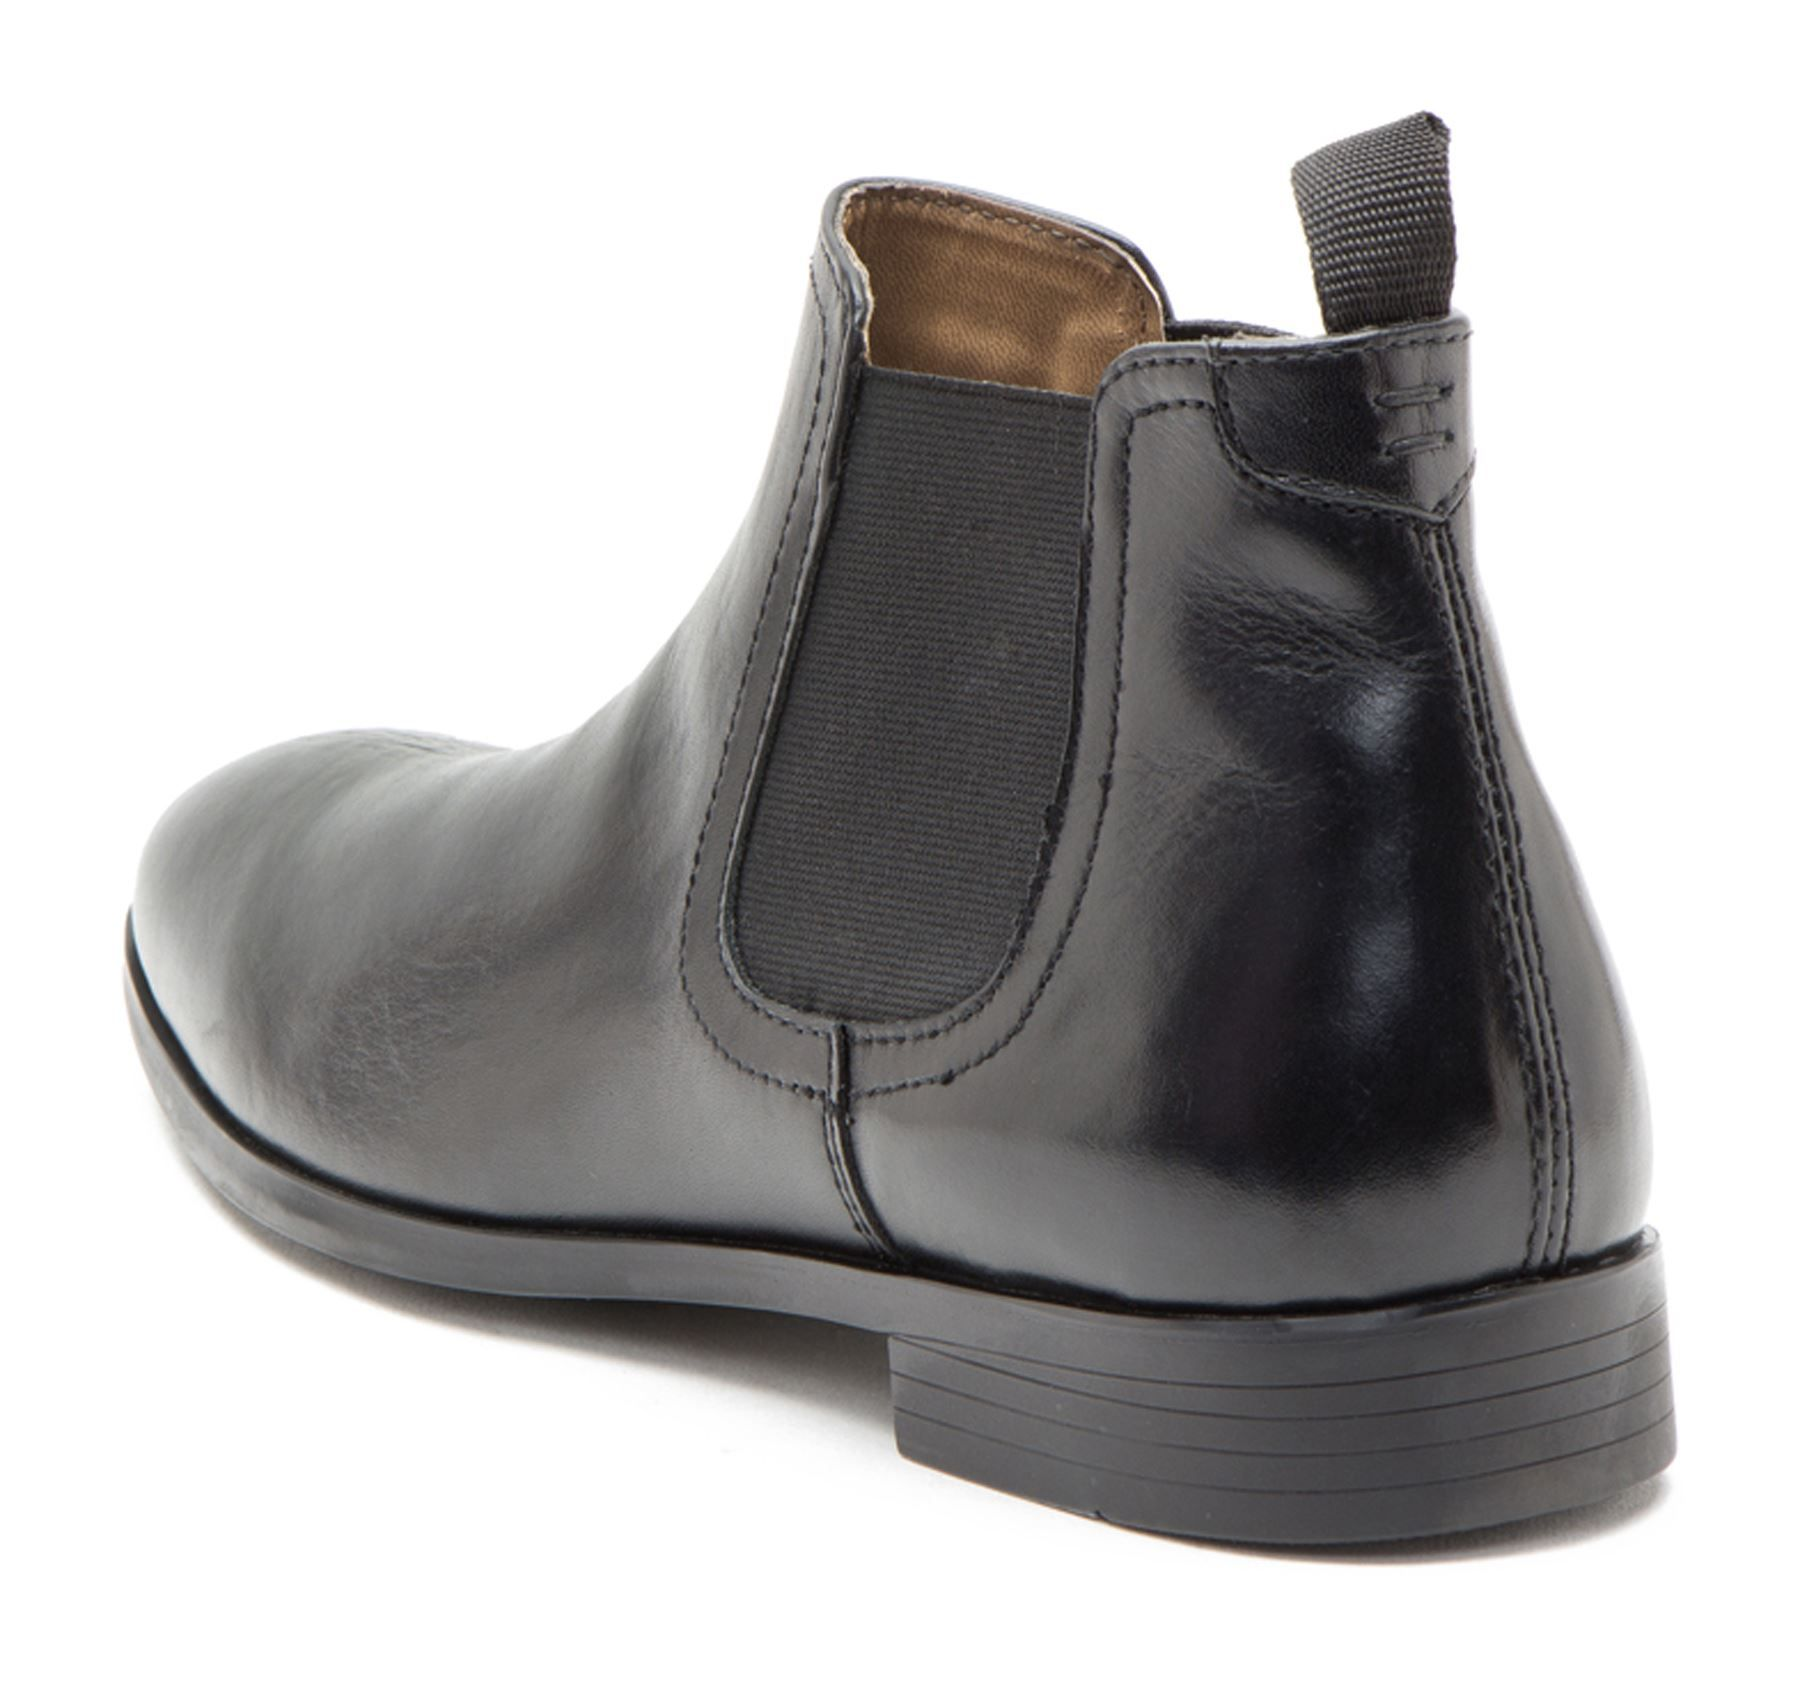 669d472bab5 Red Tape Beeston Black Tan Mens Leather Pull On Chelsea Boots Casual ...